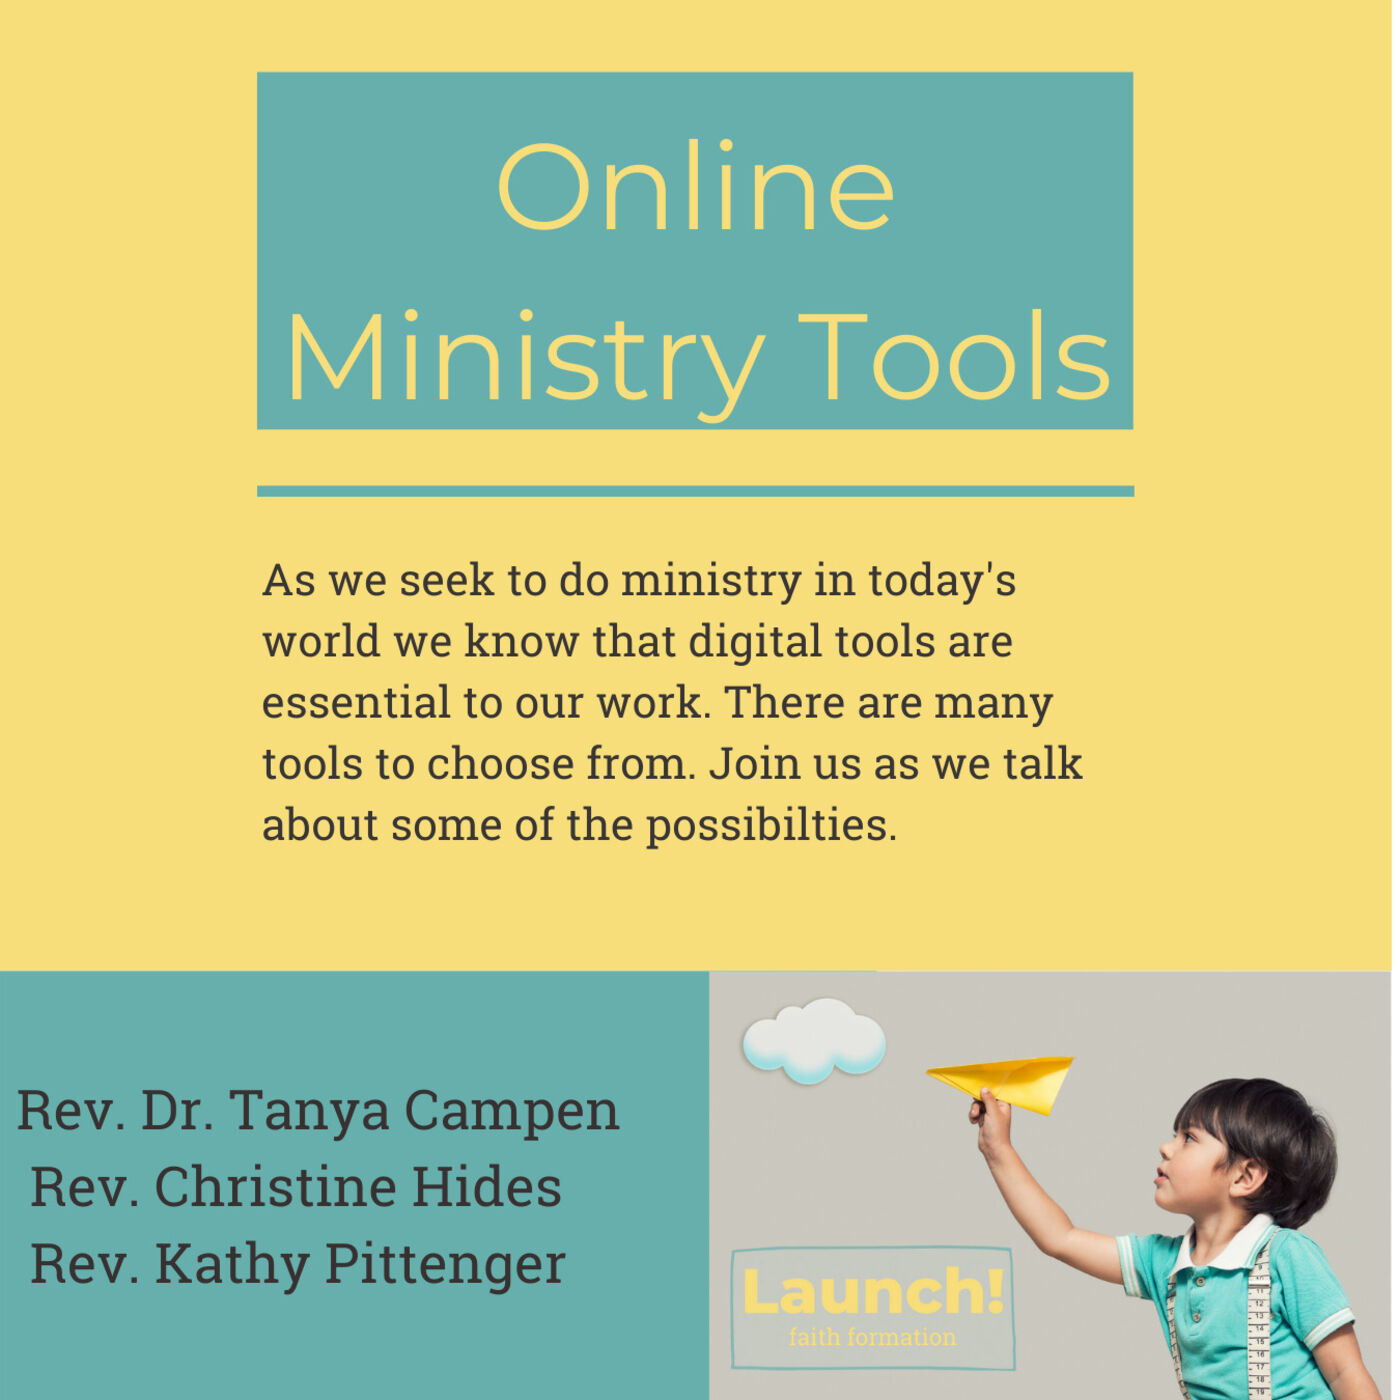 Online Ministry Tools